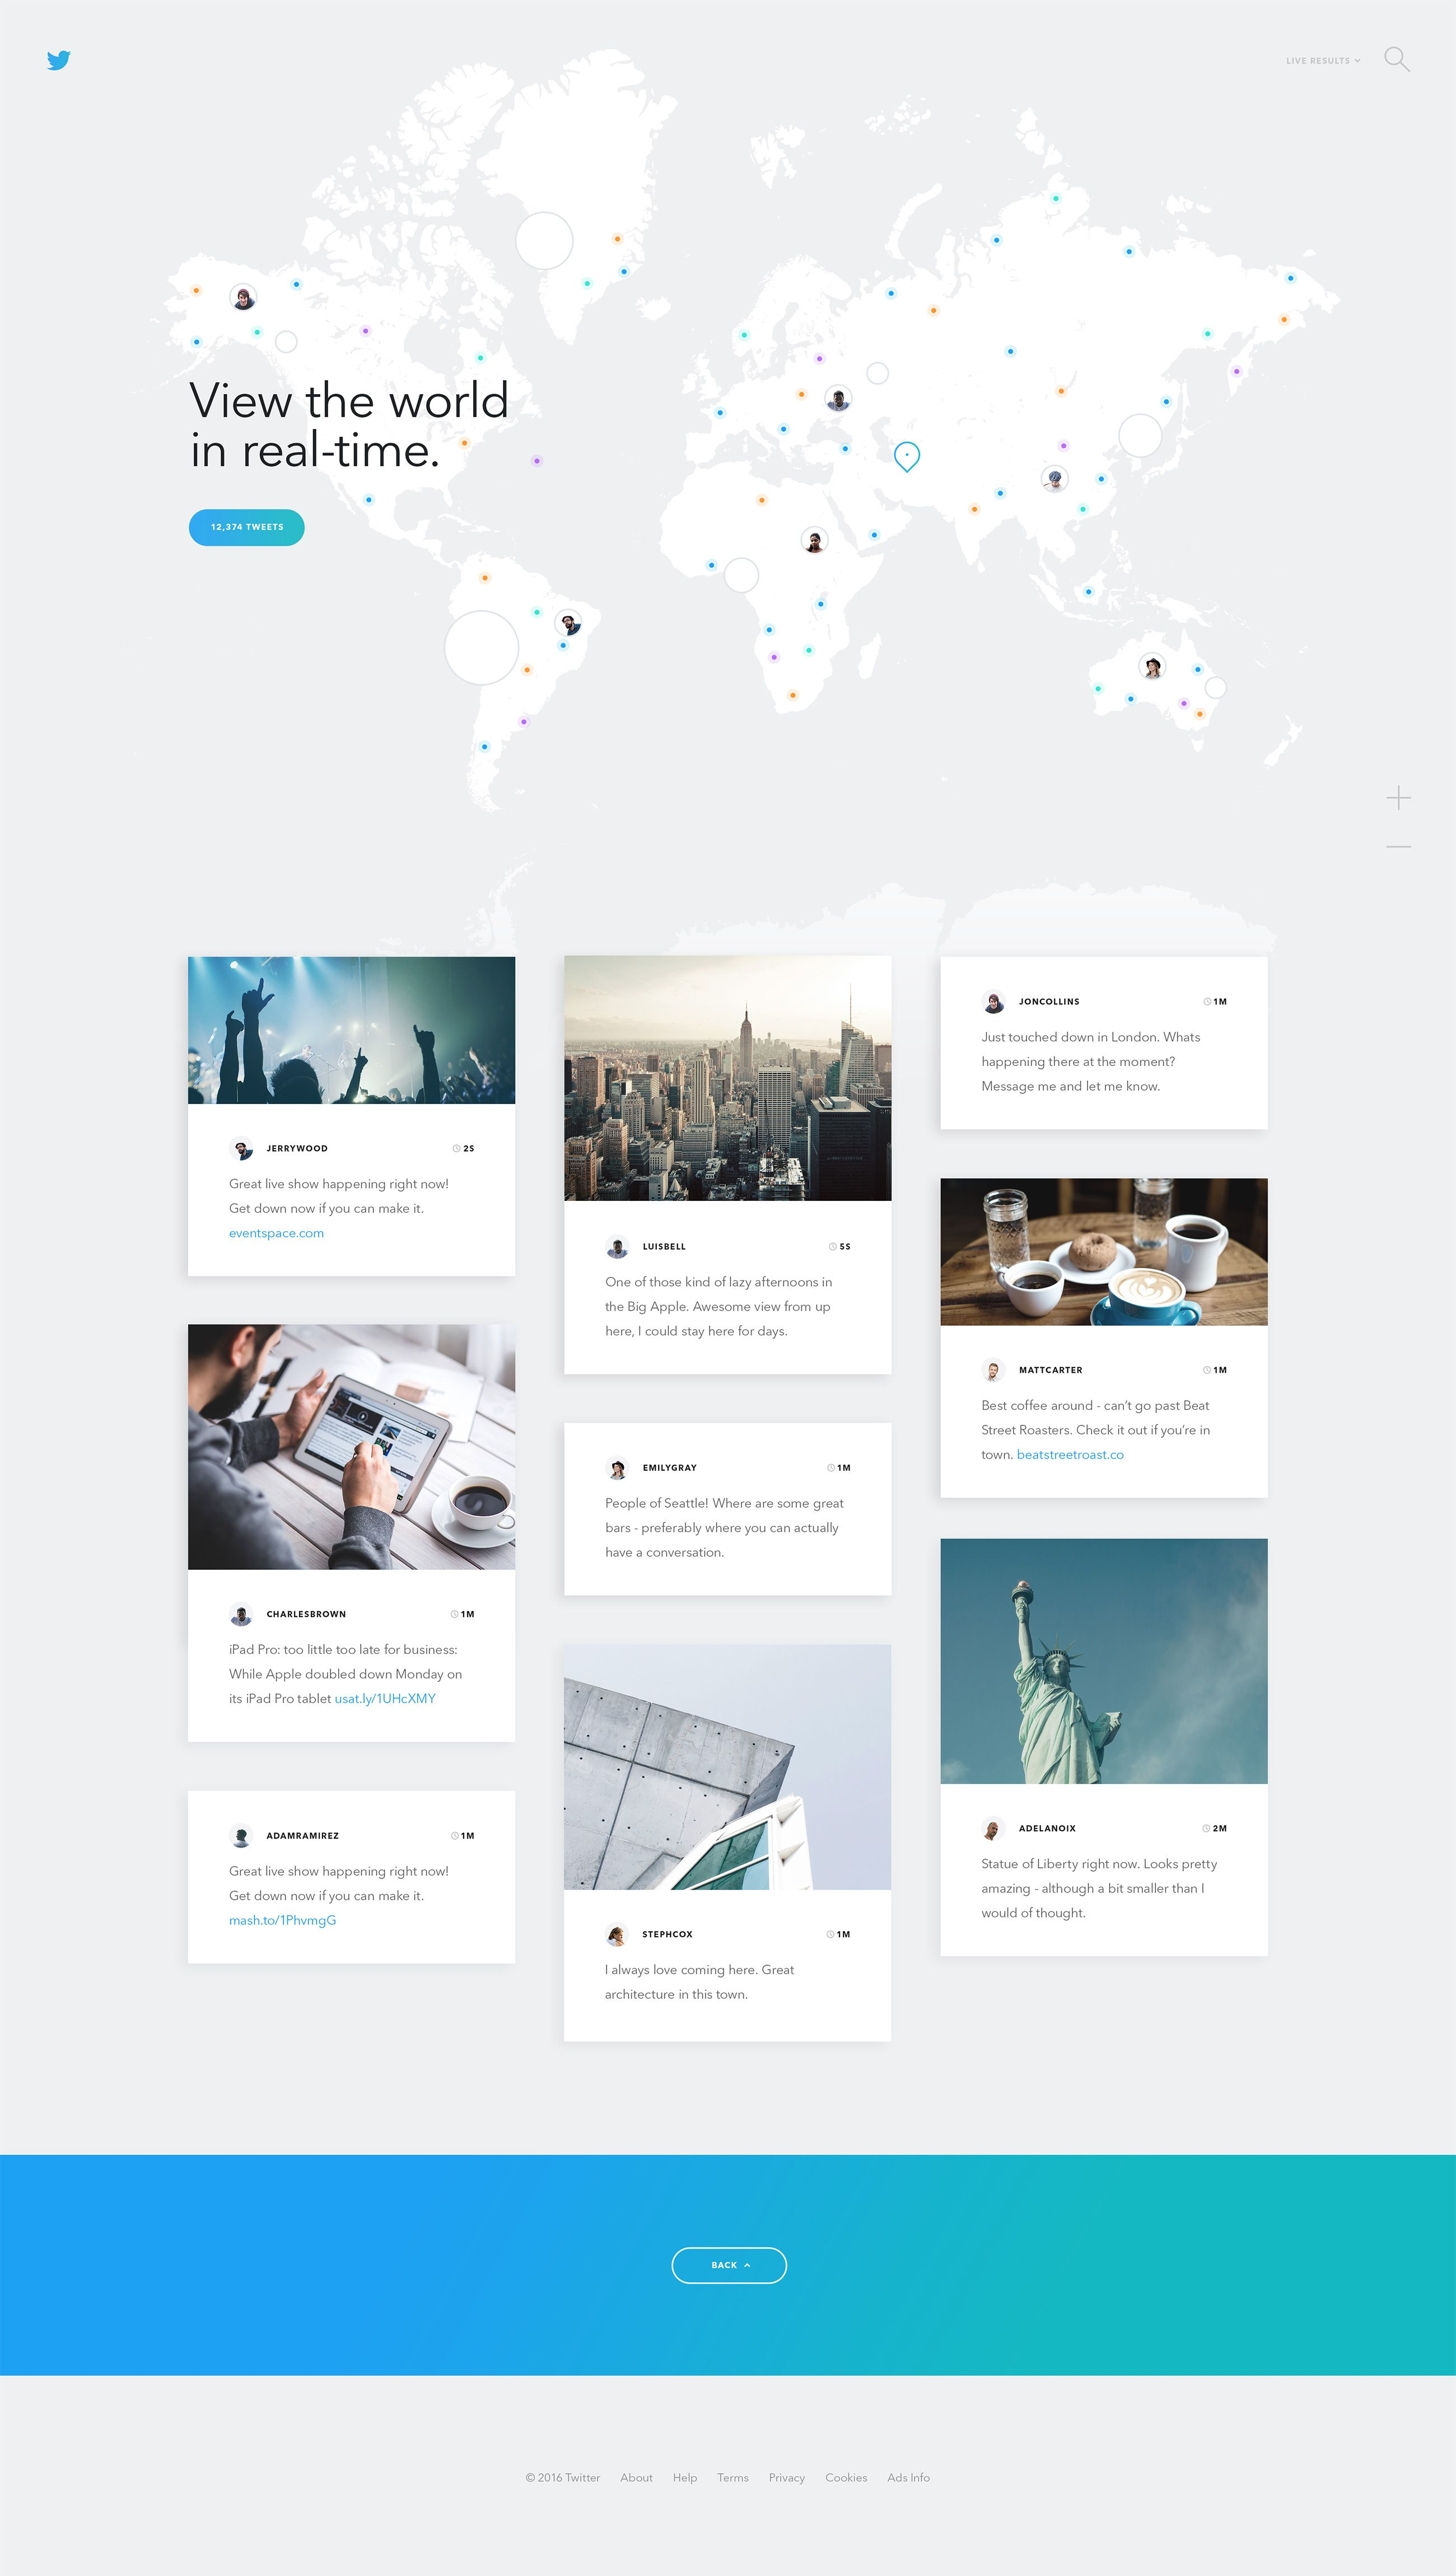 Twitter Live Twofold Graphic Web Design Web Design Websites Web Layout Design Web Design Quotes